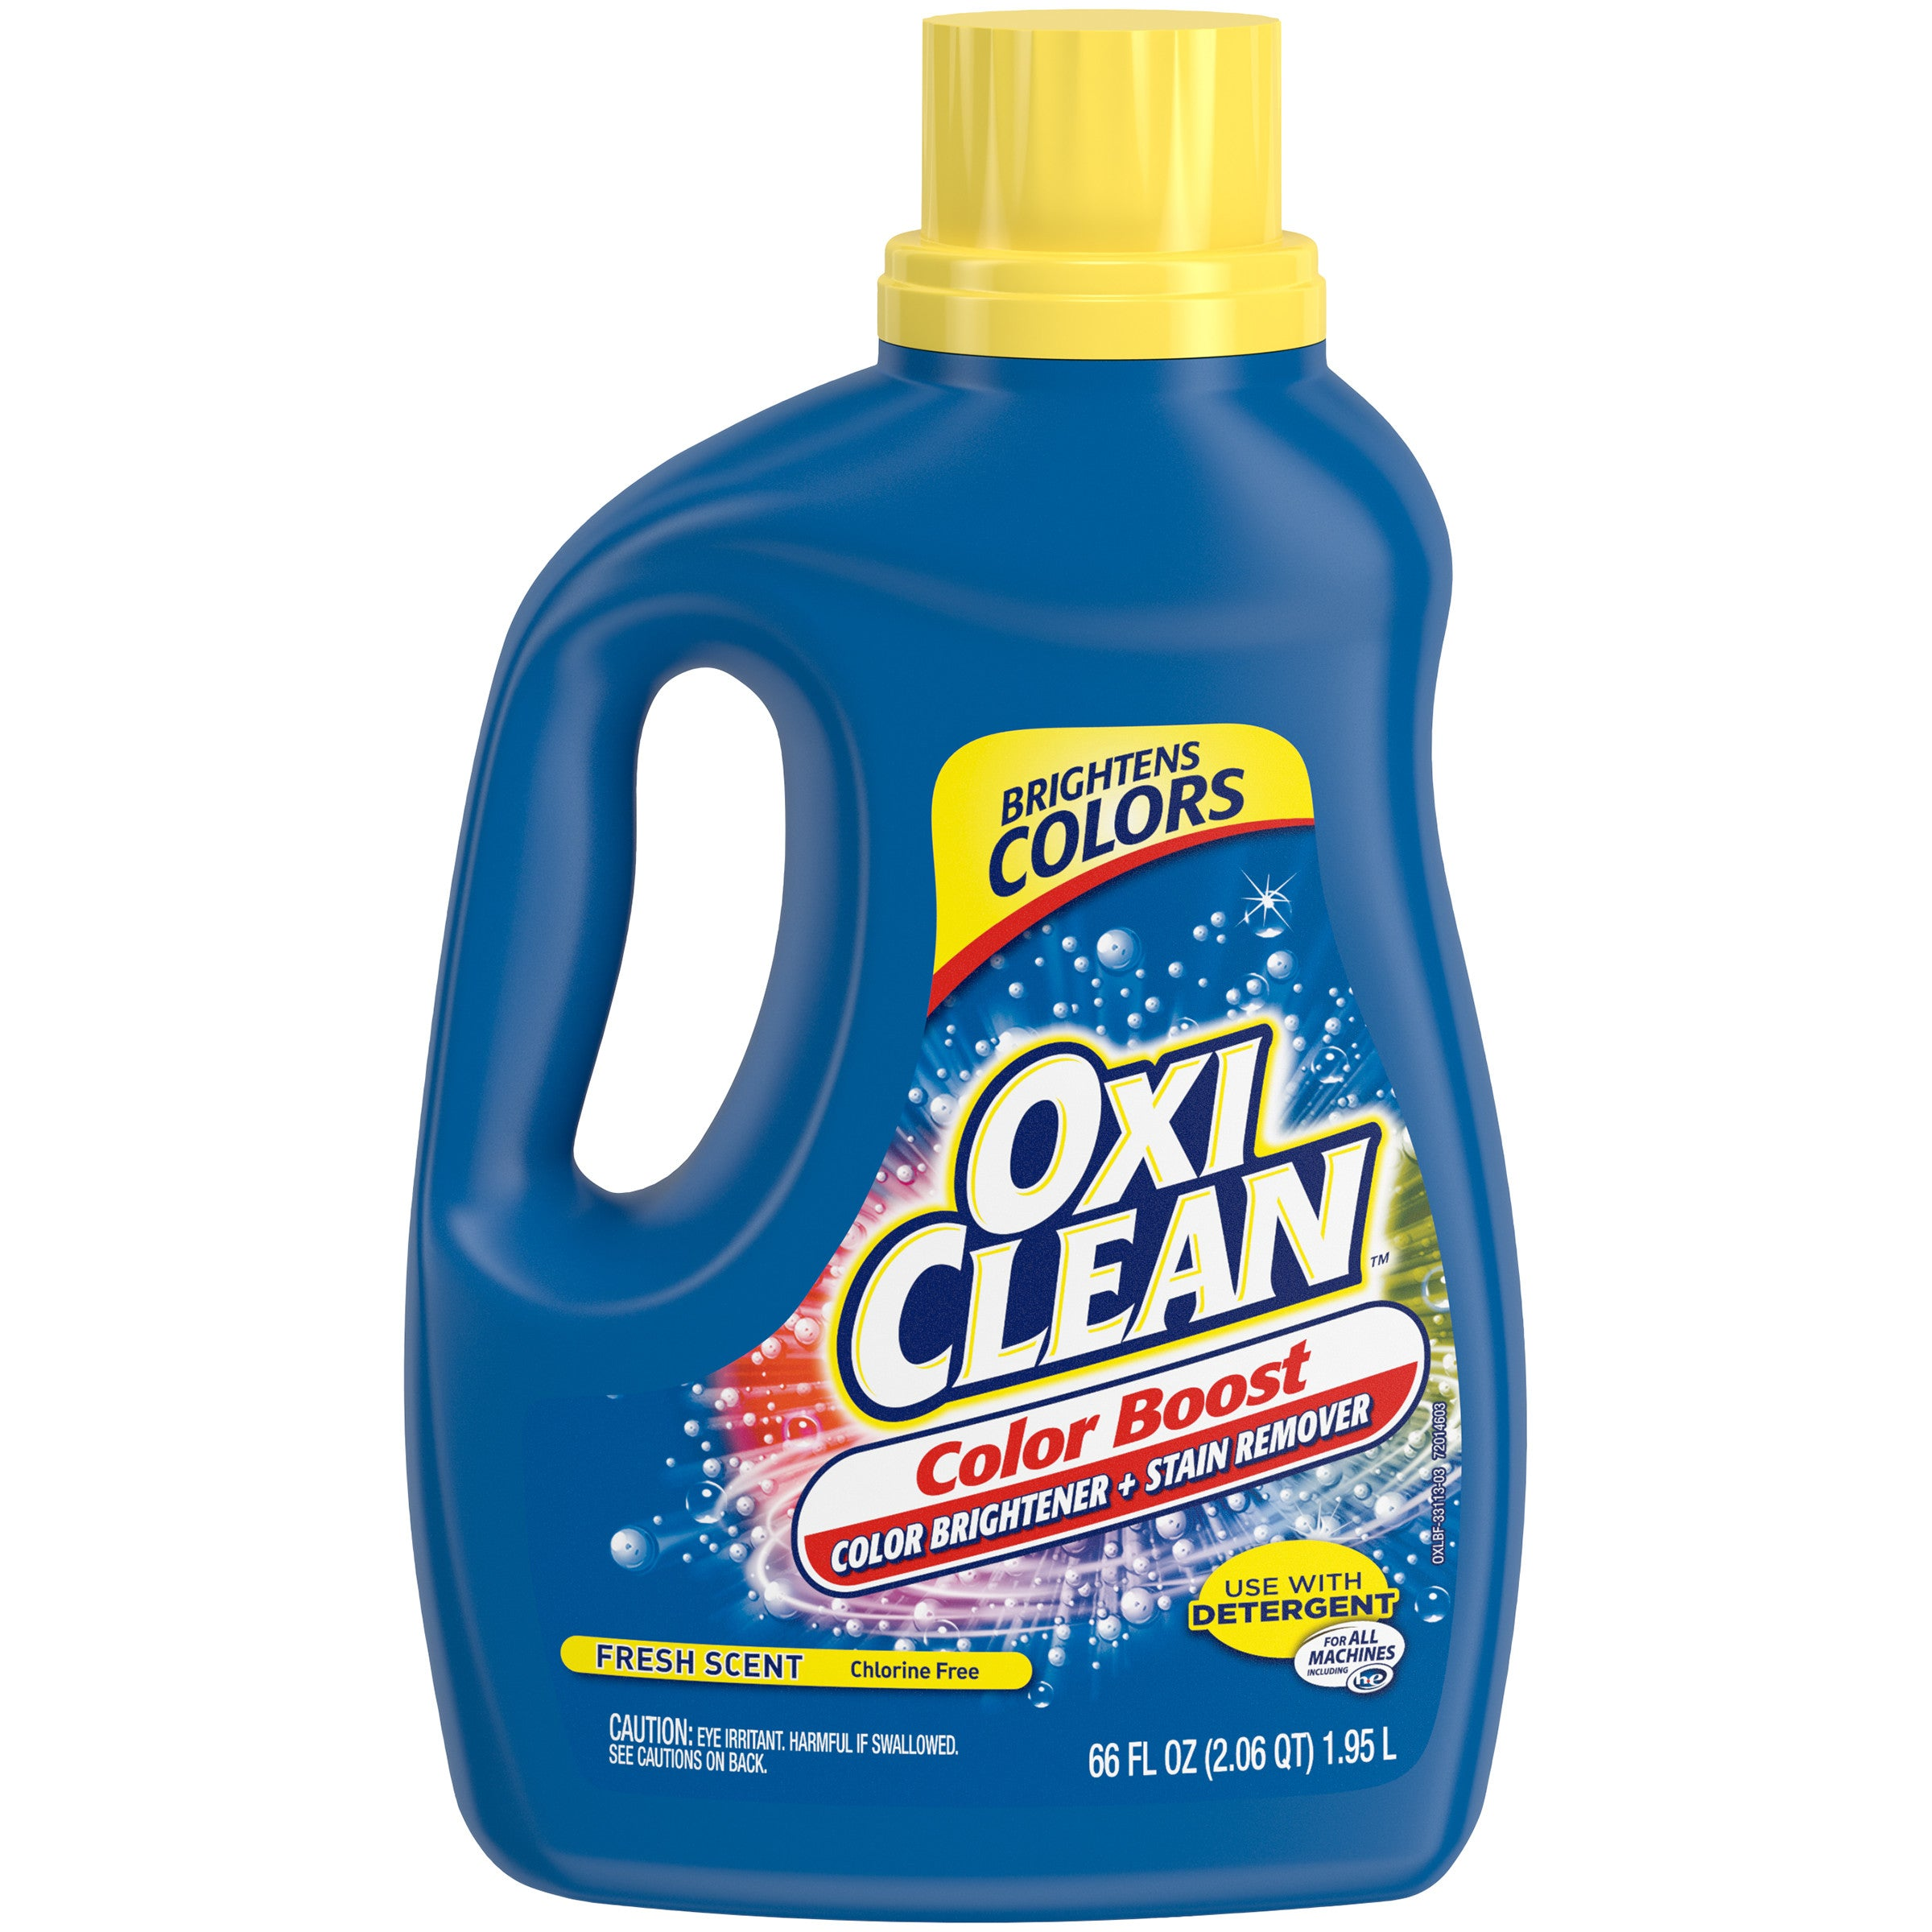 OxiClean Color Boost Color Brightener plus Stain Remover Liquid Fresh Scent 66 fl. oz. - FLJ CORPORATIONS